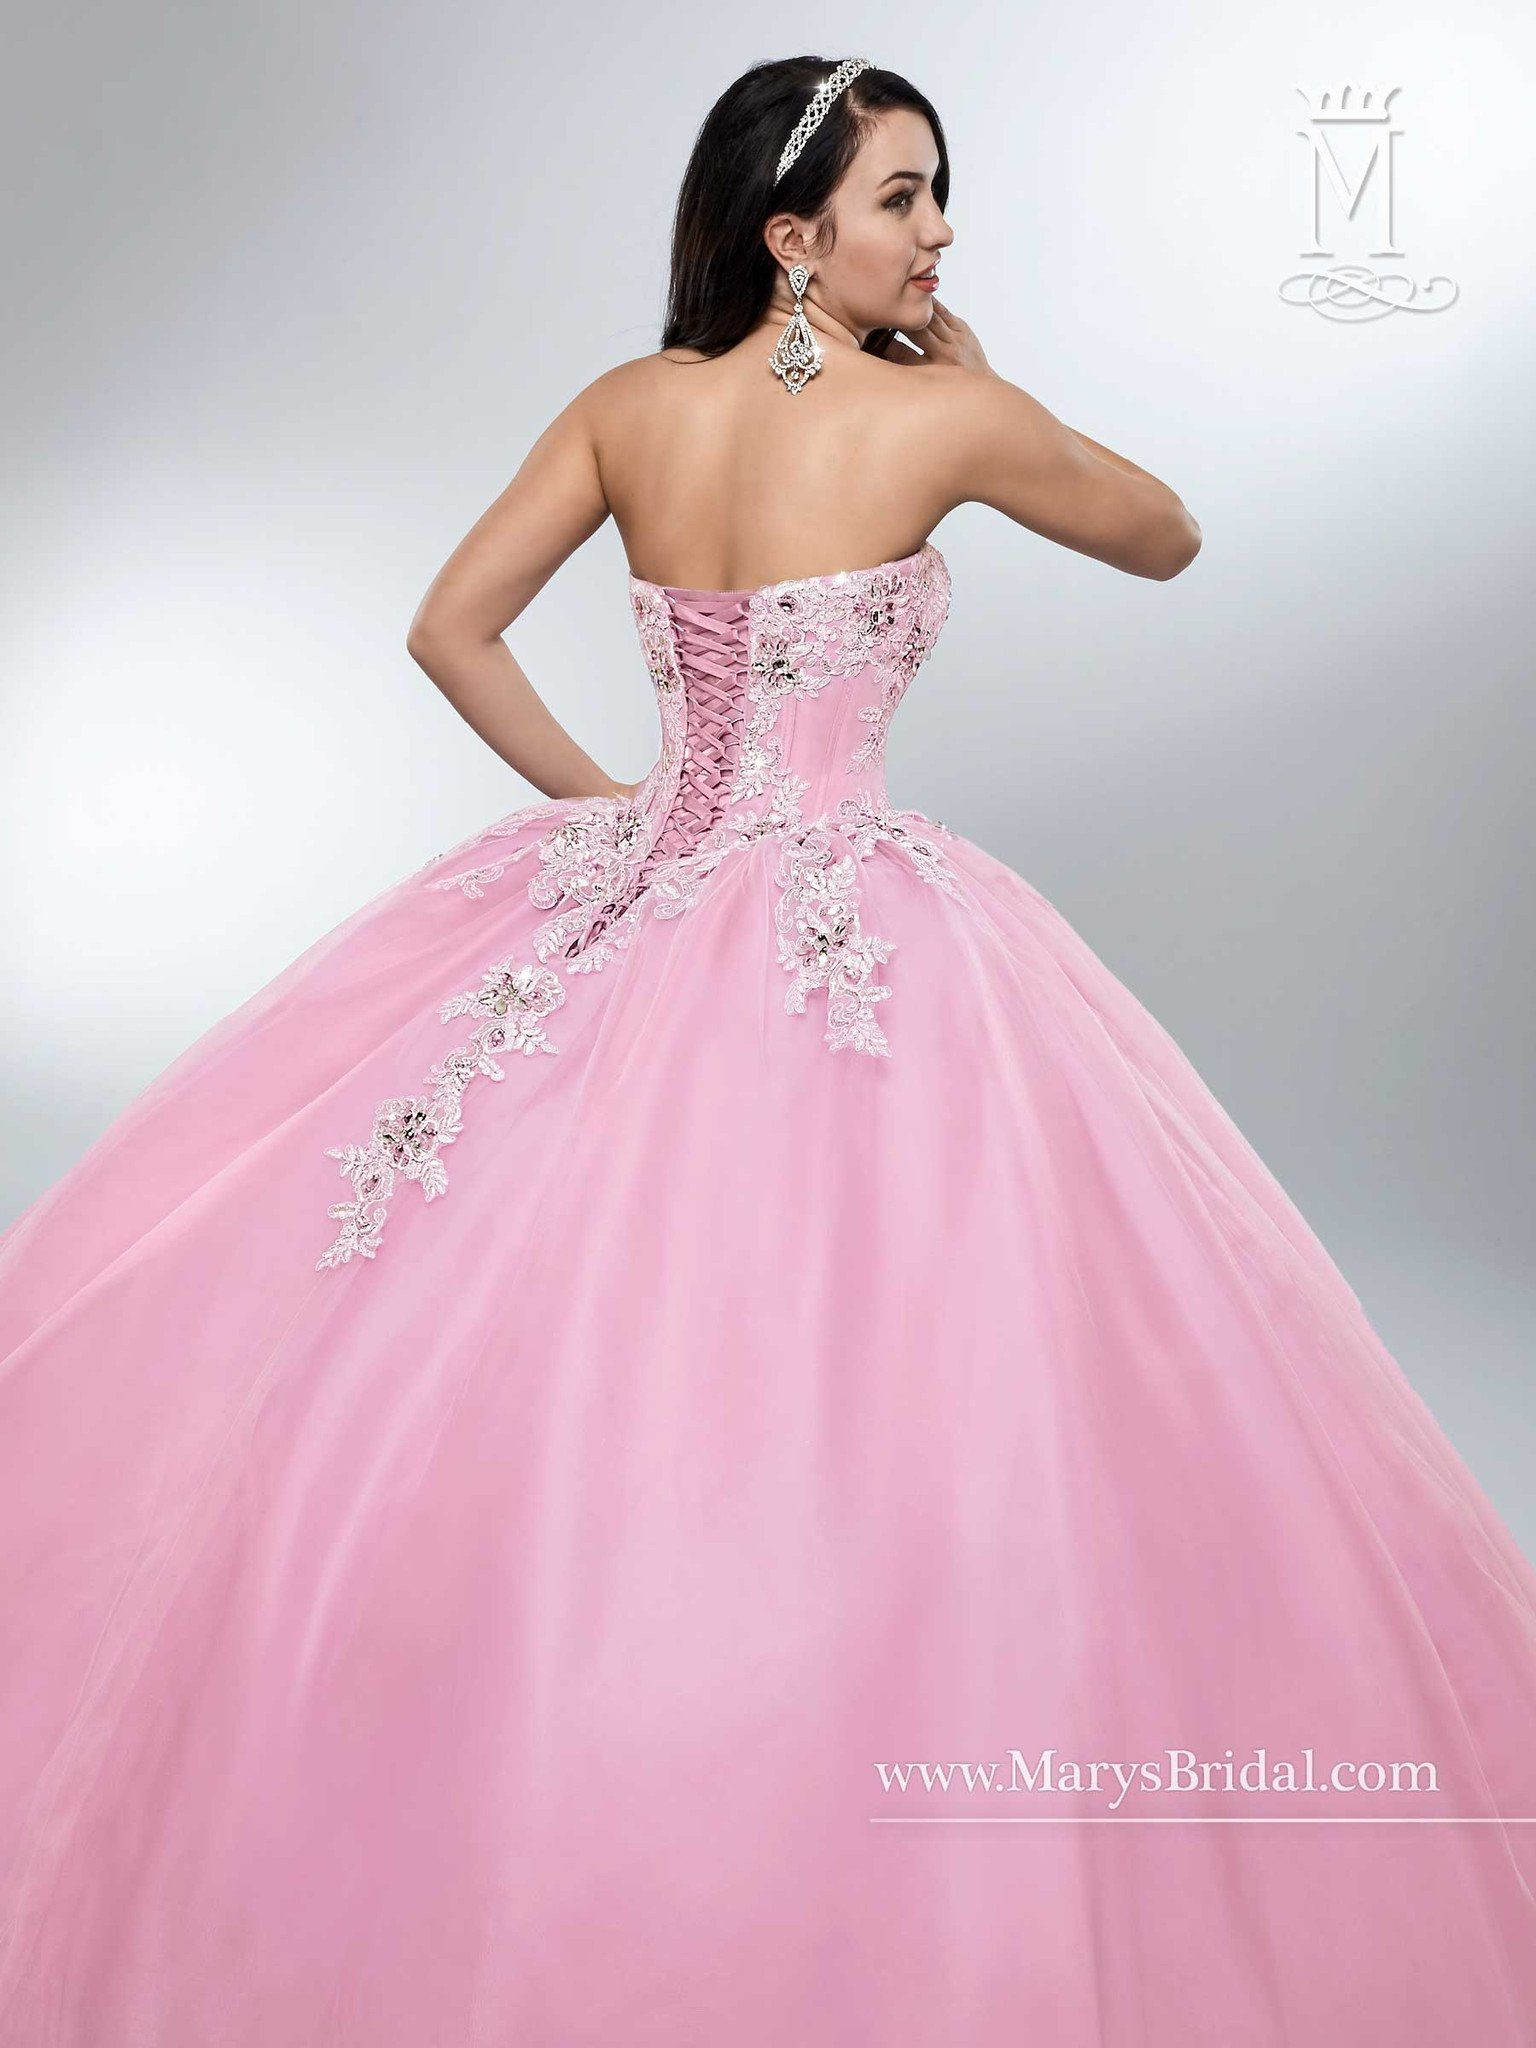 Mary\'s Bridal Beloving Collection Quinceanera Dress Style 4691 ...